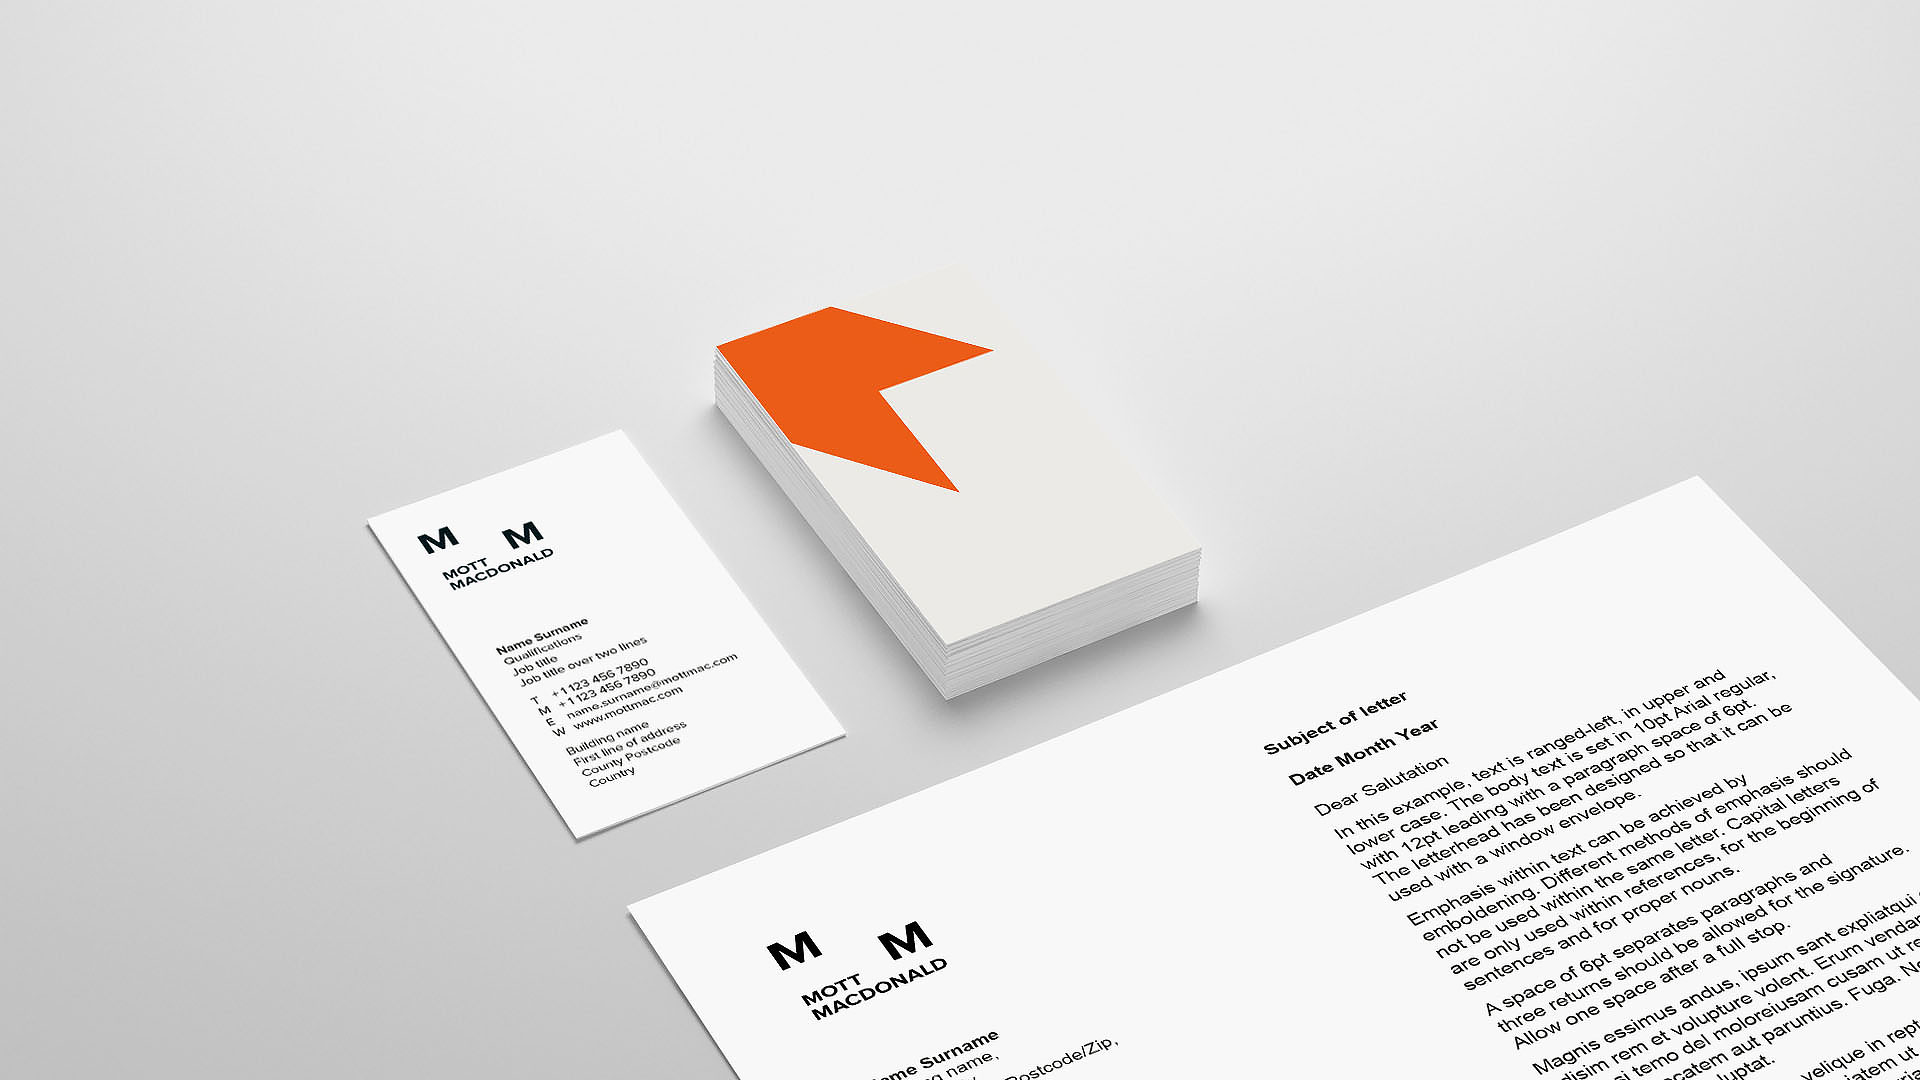 Stationery with extreme margins and vertical orientation